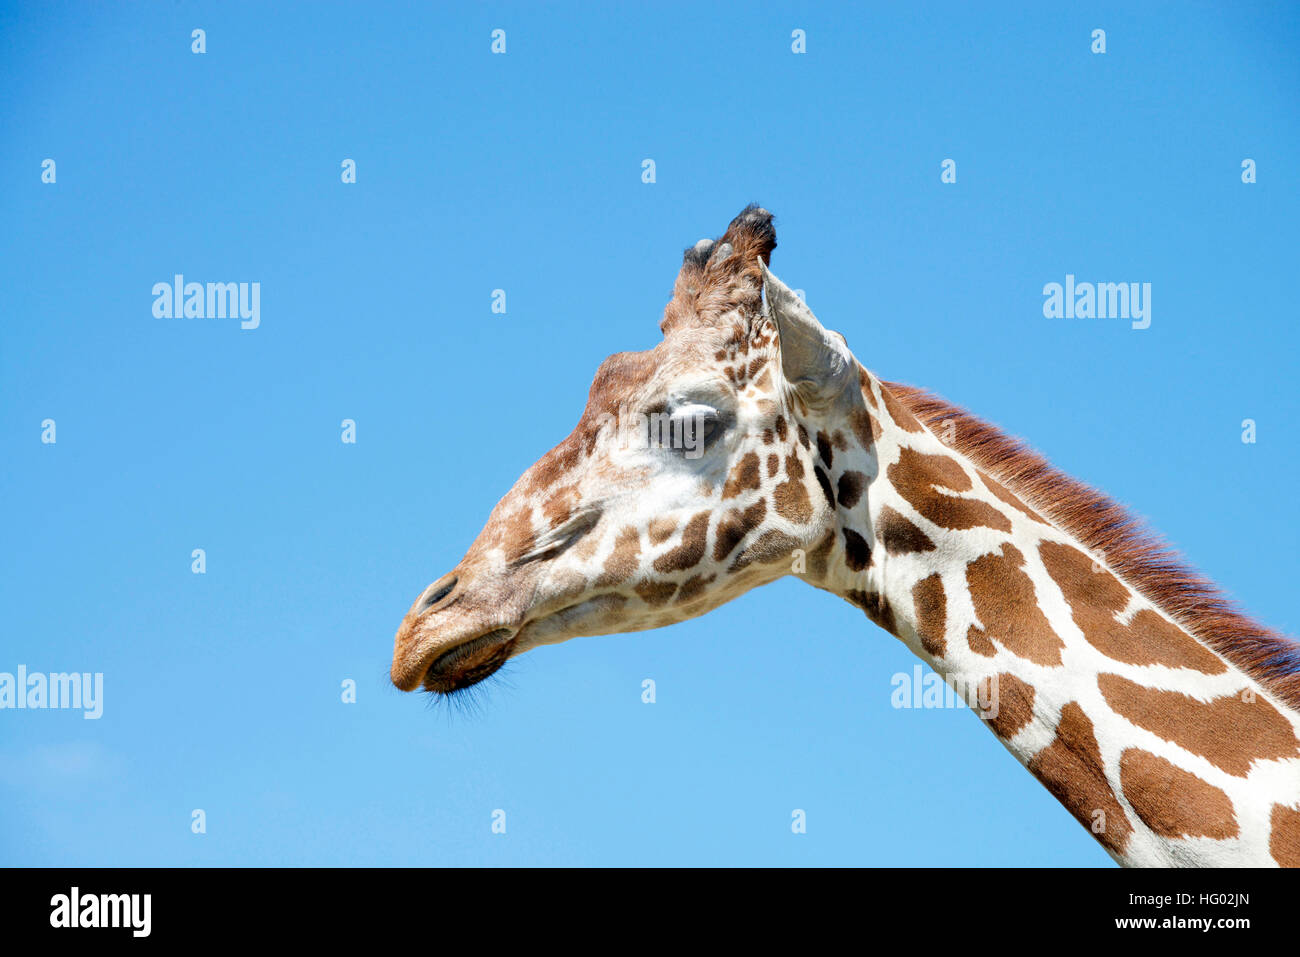 portrait of a giraffe with clear blue sky background - Stock Image